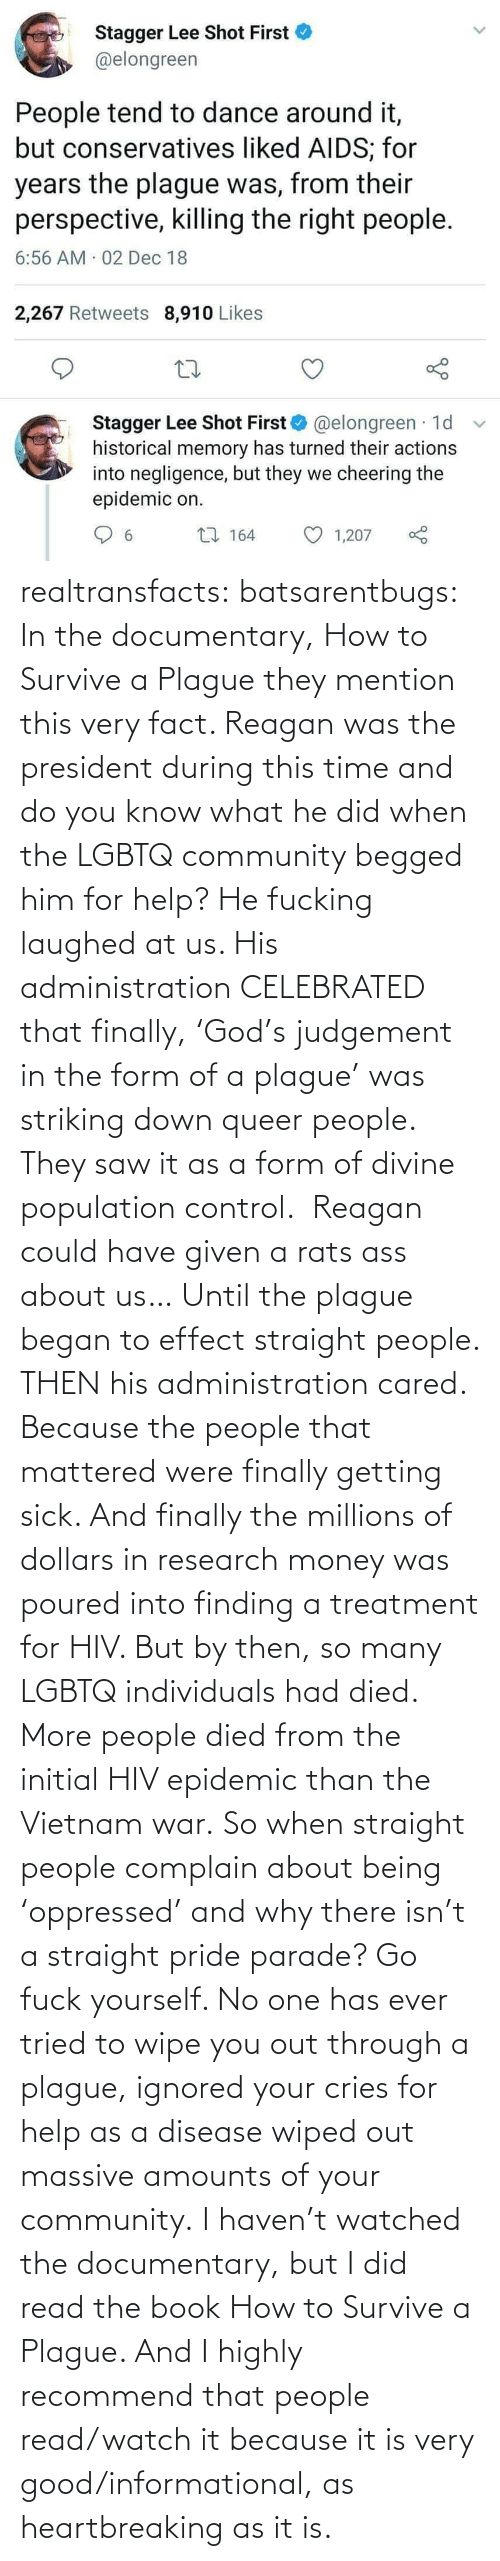 So Many: Stagger Lee Shot First  @elongreen  People tend to dance around it,  but conservatives liked AIDS; for  years the plague was, from their  perspective, killing the right people.  6:56 AM 02 Dec 18  2,267 Retweets 8,910 Likes  Stagger Lee Shot First O @elongreen · 1d  historical memory has turned their actions  into negligence, but they we cheering the  epidemic on.  27 164  1,207  6. realtransfacts:  batsarentbugs:  In the documentary, How to Survive a Plague they mention this very fact. Reagan was the president during this time and do you know what he did when the LGBTQ community begged him for help? He fucking laughed at us. His administration CELEBRATED that finally, 'God's judgement in the form of a plague' was striking down queer people.  They saw it as a form of divine population control.  Reagan could have given a rats ass about us… Until the plague began to effect straight people. THEN his administration cared. Because the people that mattered were finally getting sick. And finally the millions of dollars in research money was poured into finding a treatment for HIV. But by then, so many LGBTQ individuals had died.  More people died from the initial HIV epidemic than the Vietnam war. So when straight people complain about being 'oppressed' and why there isn't a straight pride parade? Go fuck yourself. No one has ever tried to wipe you out through a plague, ignored your cries for help as a disease wiped out massive amounts of your community.  I haven't watched the documentary, but I did read the book  How to Survive a Plague. And I highly recommend that people read/watch it because it is very good/informational, as heartbreaking as it is.